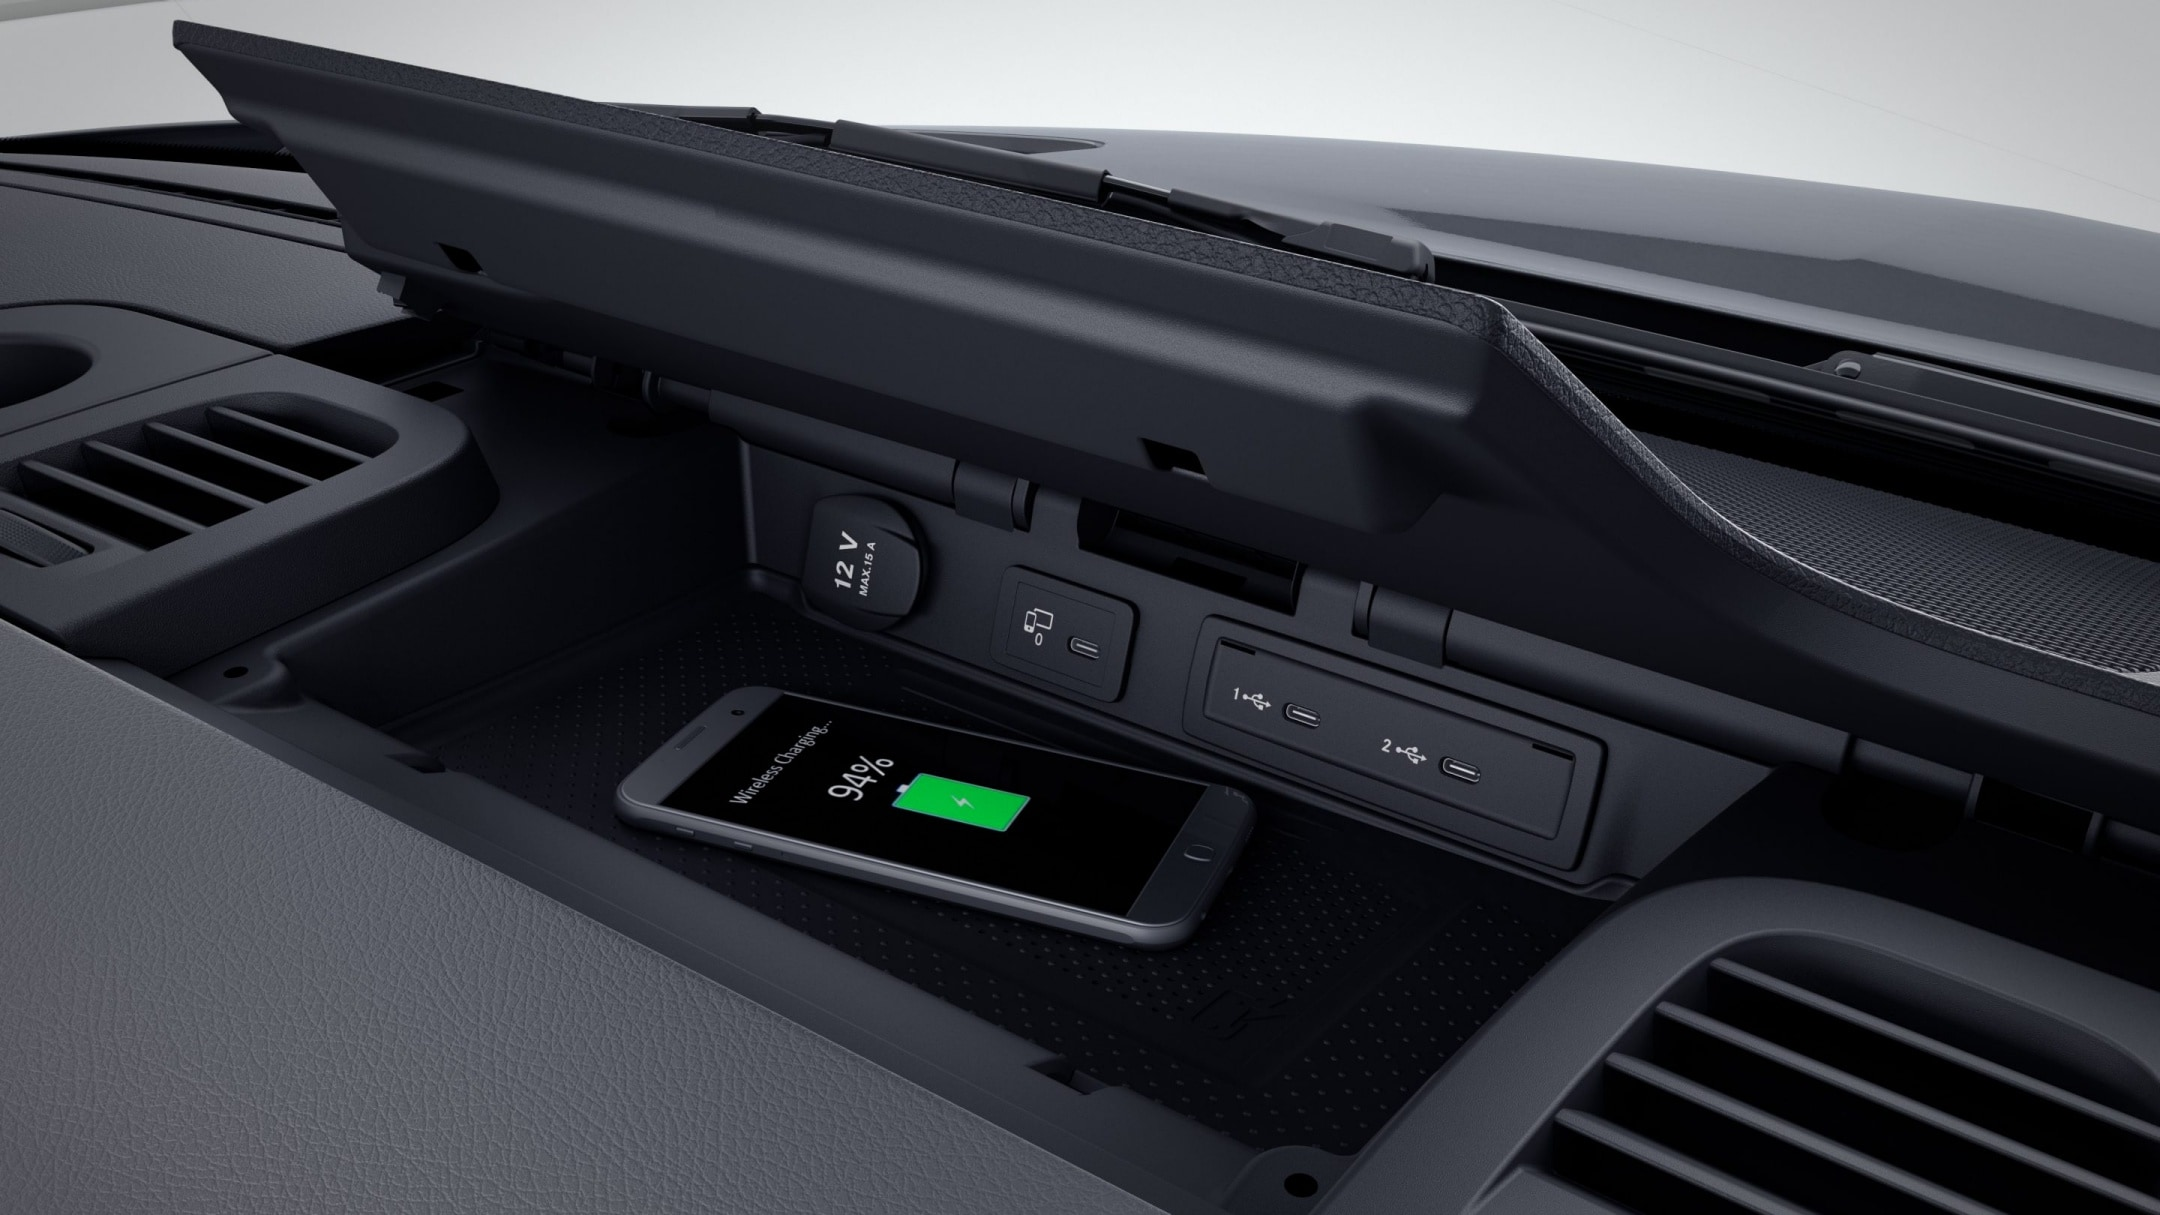 Sprinter Furgão, base para smartphones com Wireless Charging